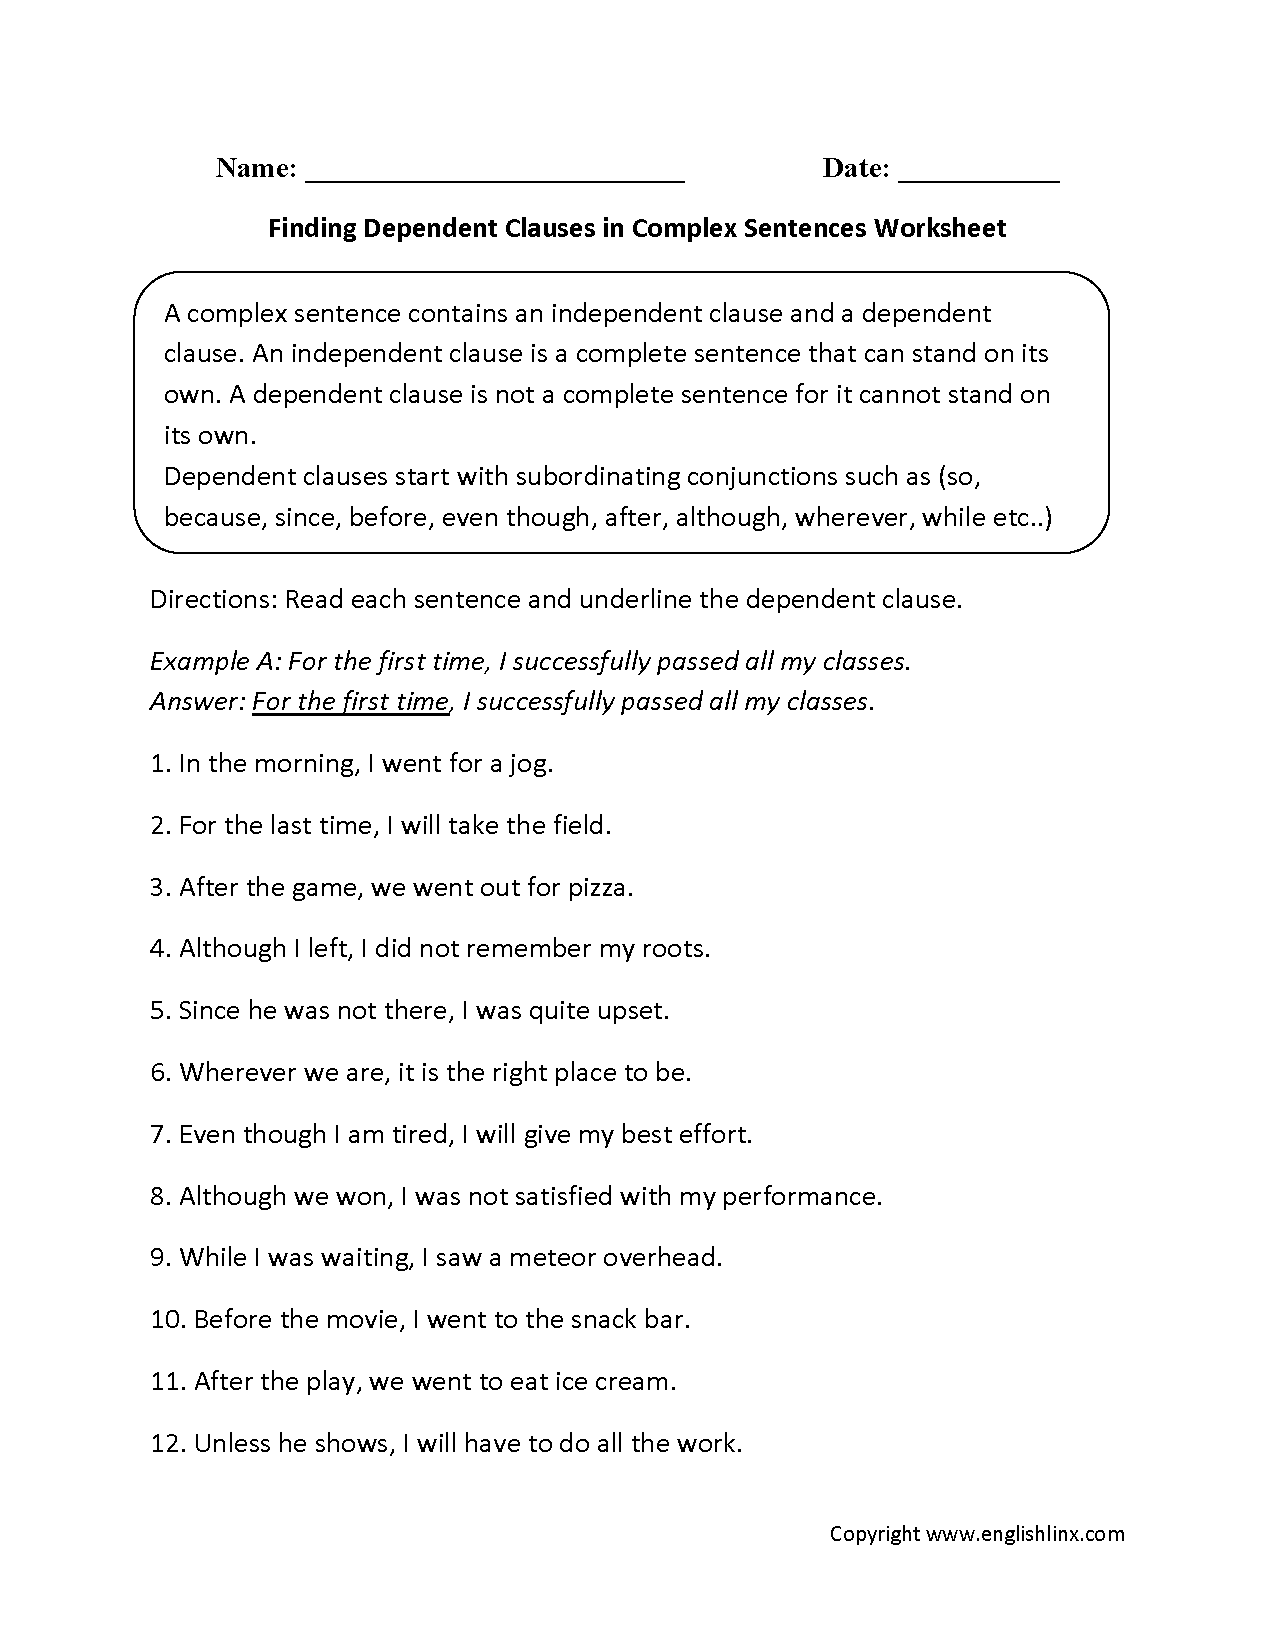 Finding Dependent Clauses Complex Sentences Worksheets Gparrino